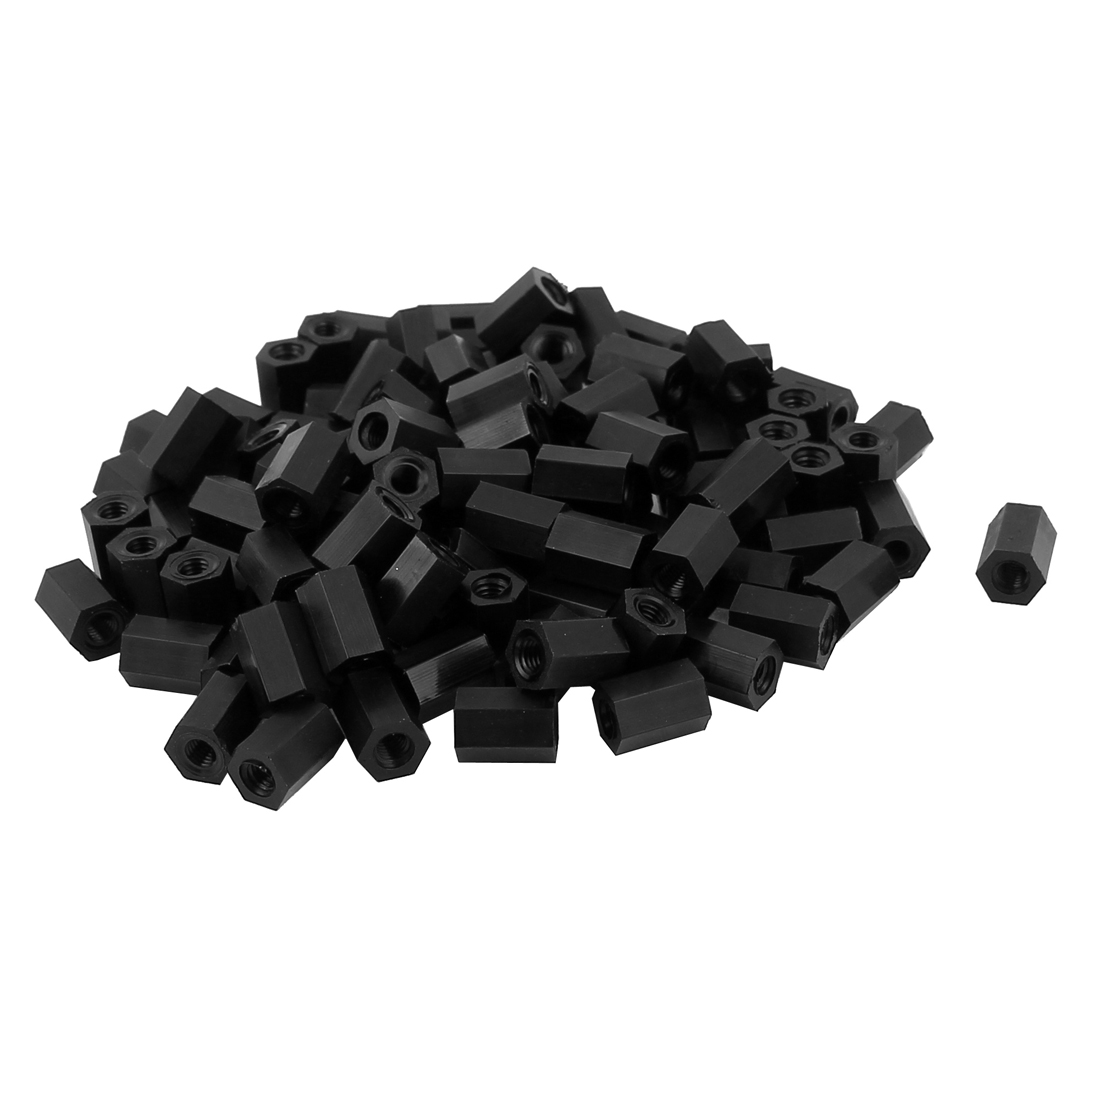 M3x8mm Female Thread Nylon Hex Standoff Spacer PCB Pillar Screw Nut Black 100pcs